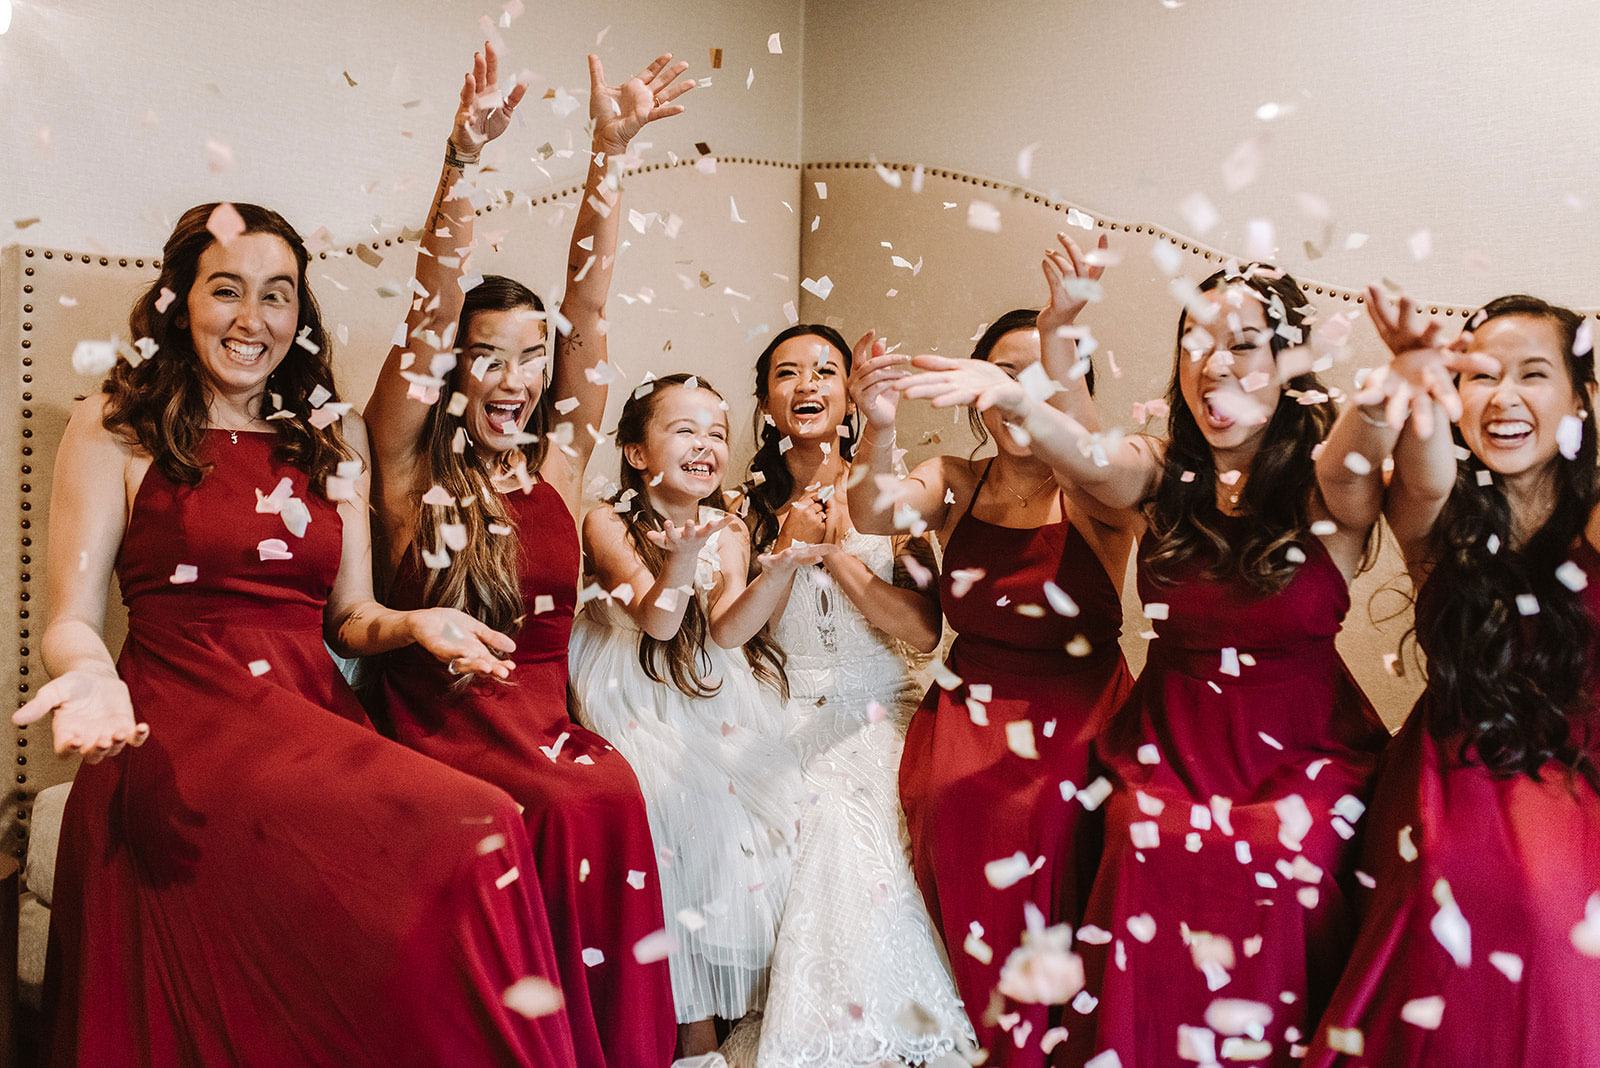 Bridesmaids throwing confetti